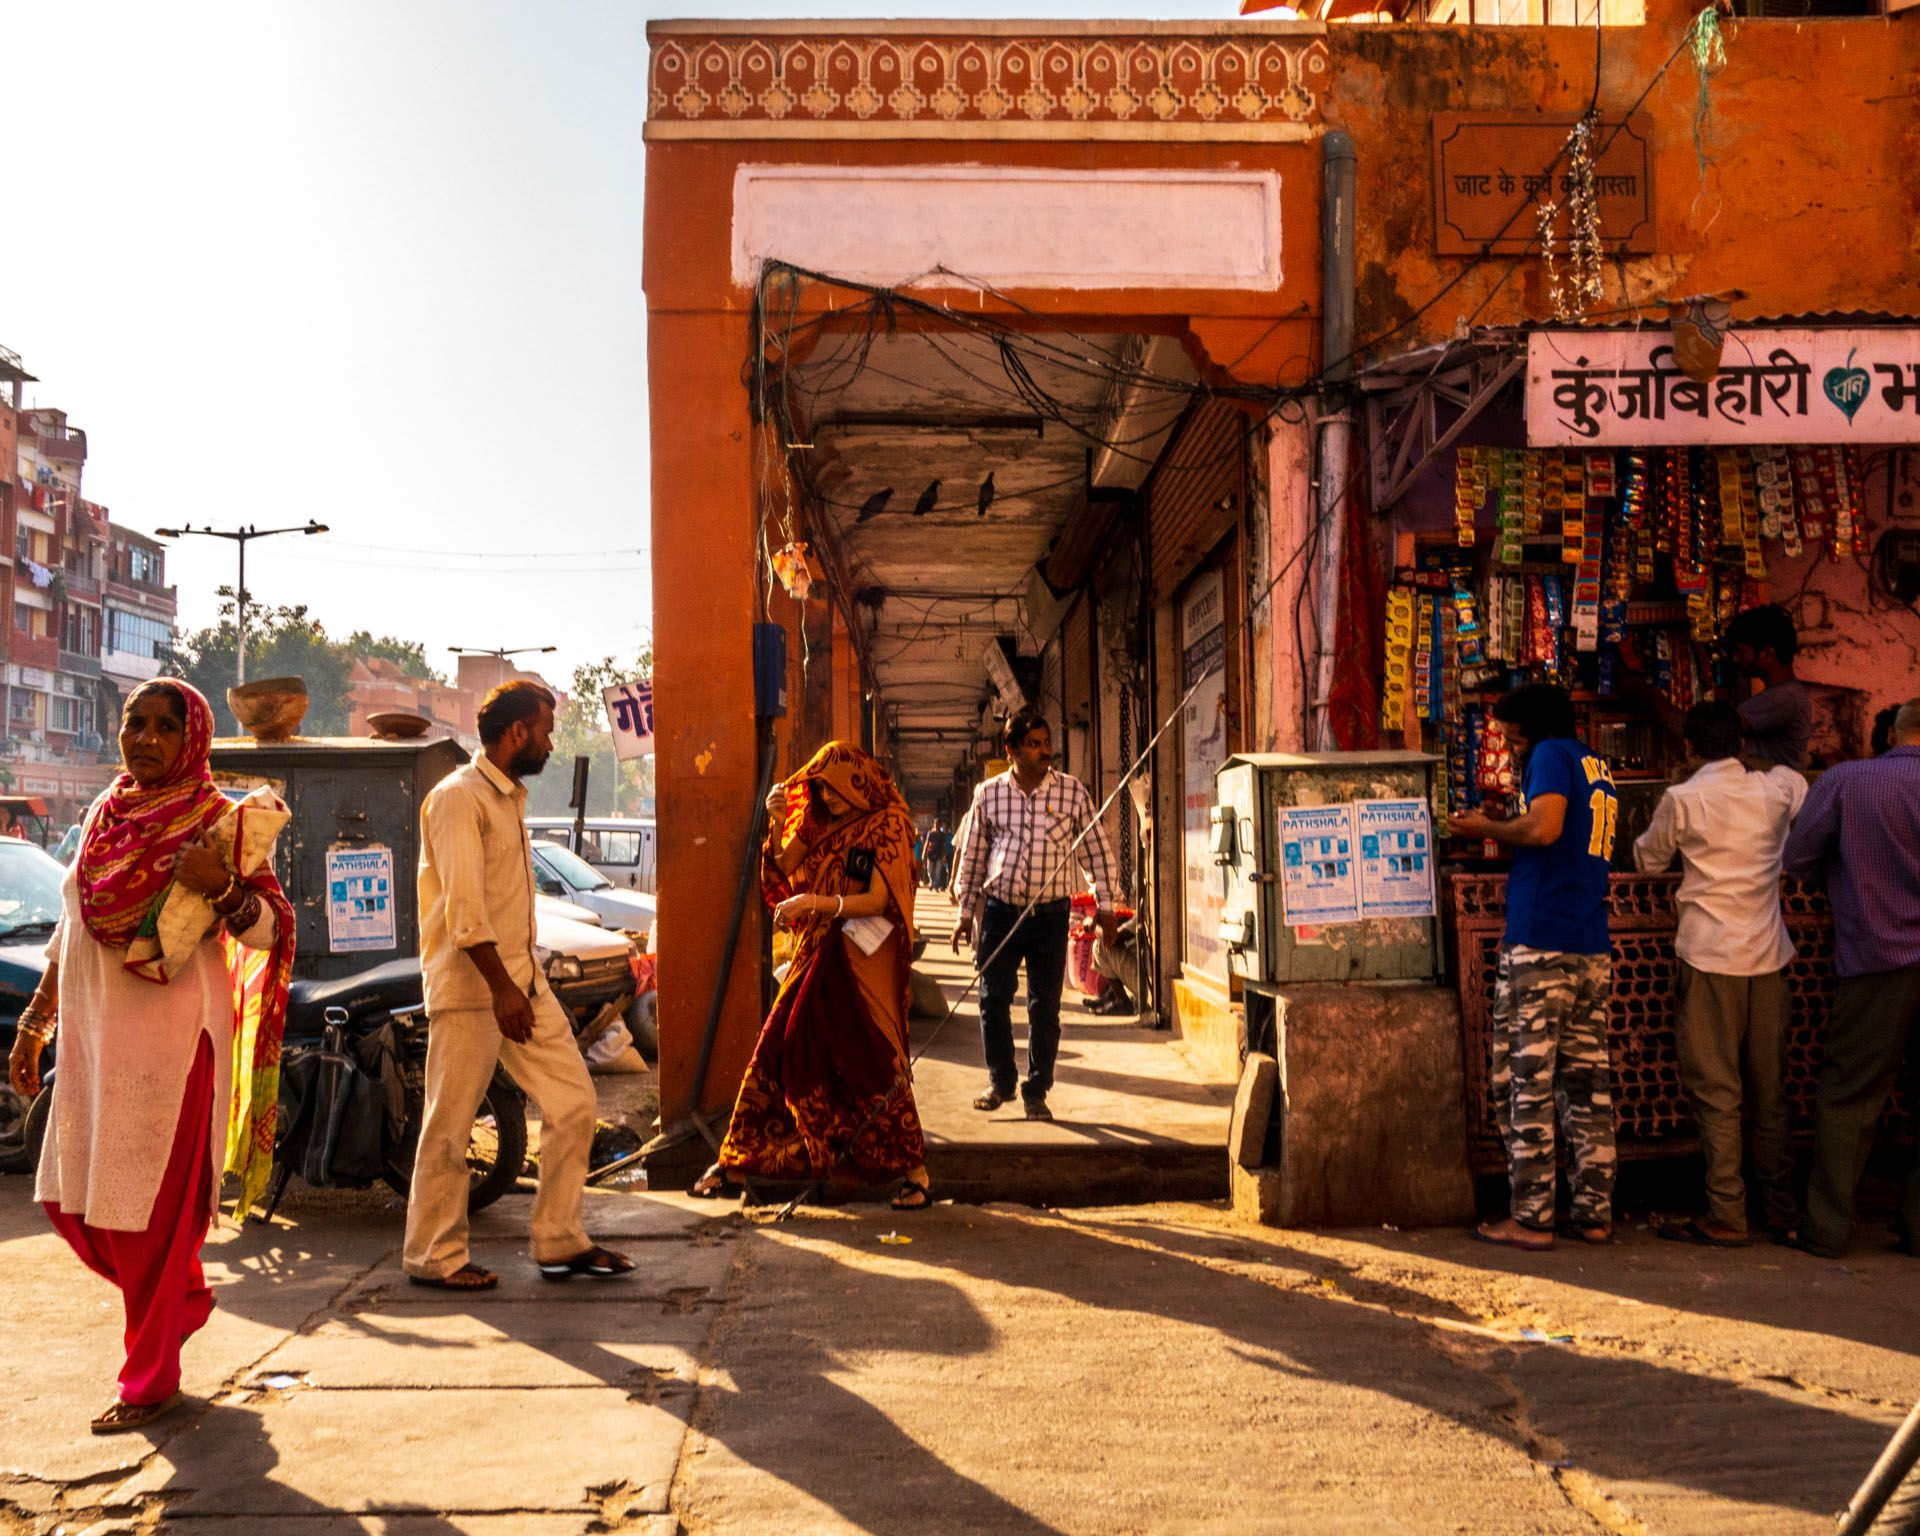 Street scene of old part of Jaipur with the busy markets.